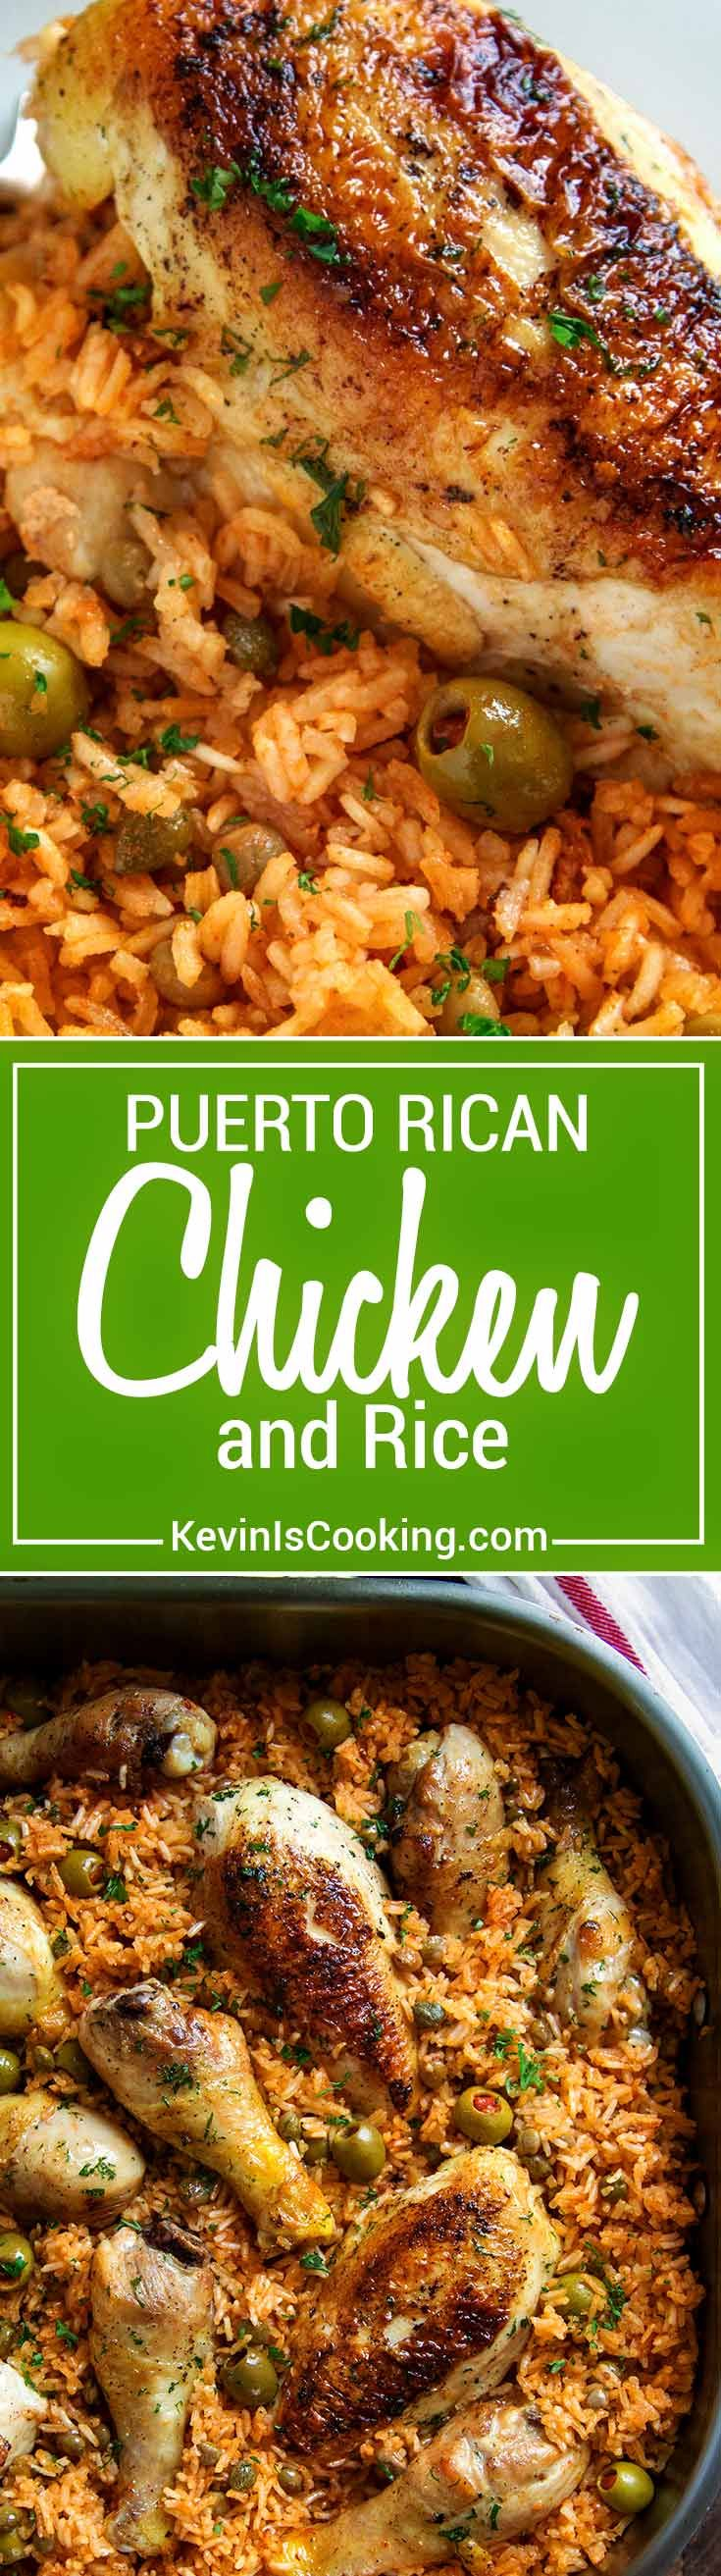 Puerto Rican Chicken and Rice is a Latin classic and packed with flavor, not heat. Browned chicken simmers in rice, flavorful sofrito, olives and capers. via @keviniscooking